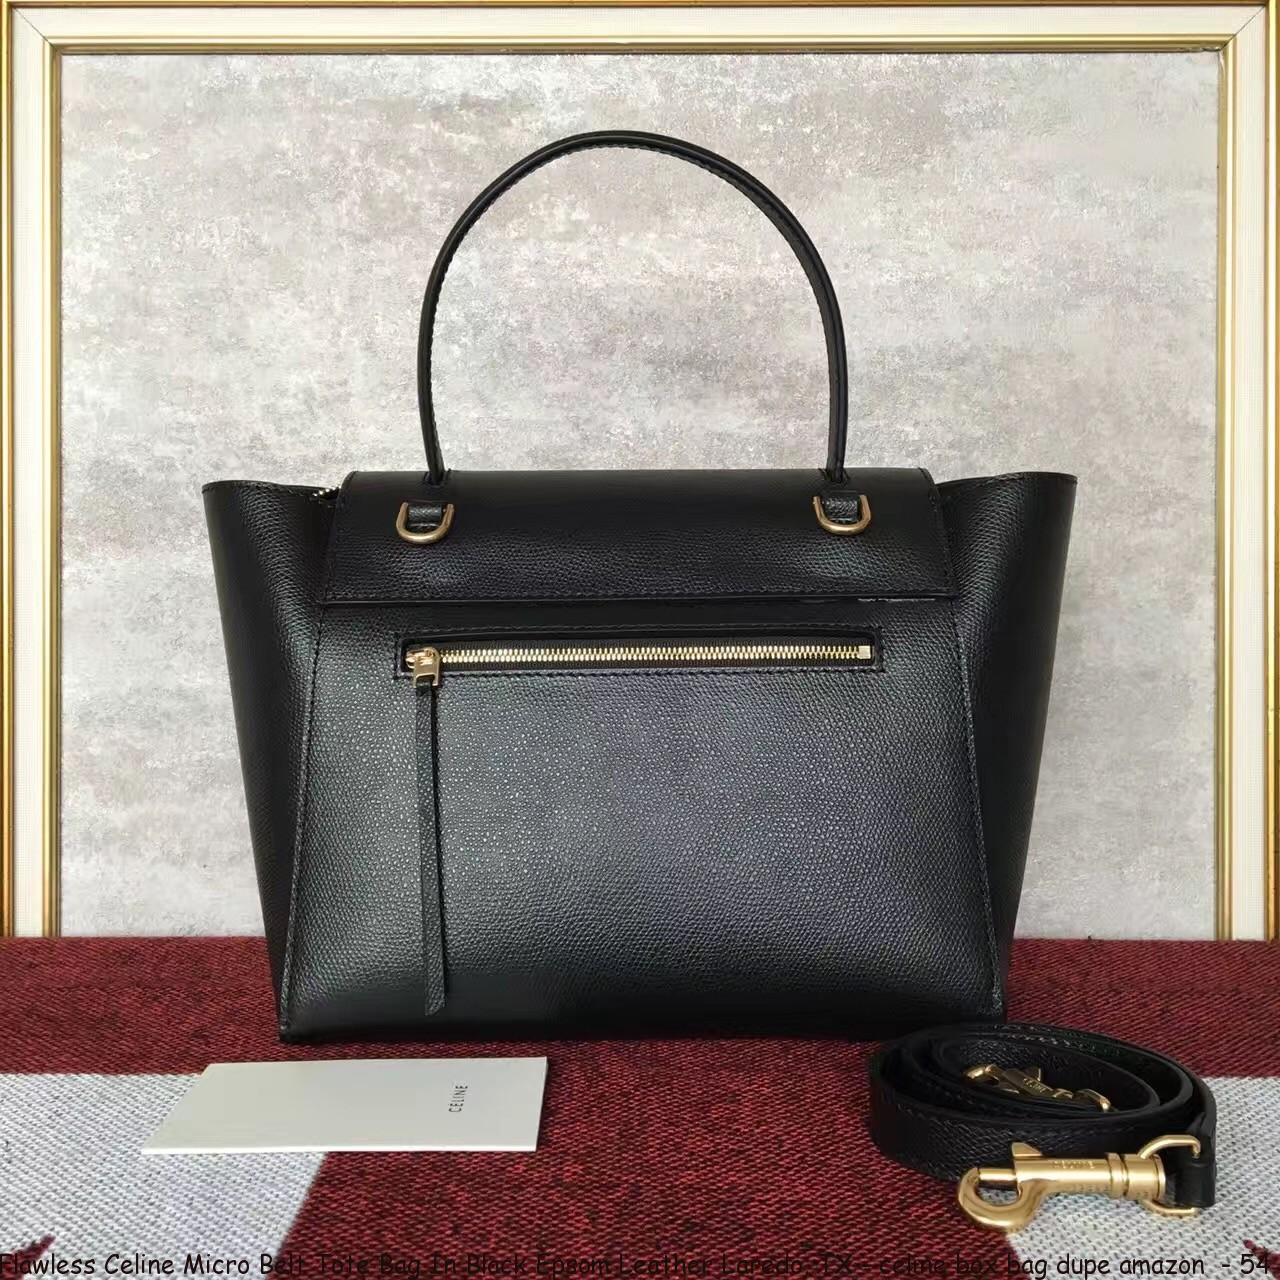 Flawless Celine Micro Belt Tote Bag In Black Epsom Leather Laredo Tx Celine Box Bag Dupe Amazon 54 Cheap Replica Celine Handbags 70 Off